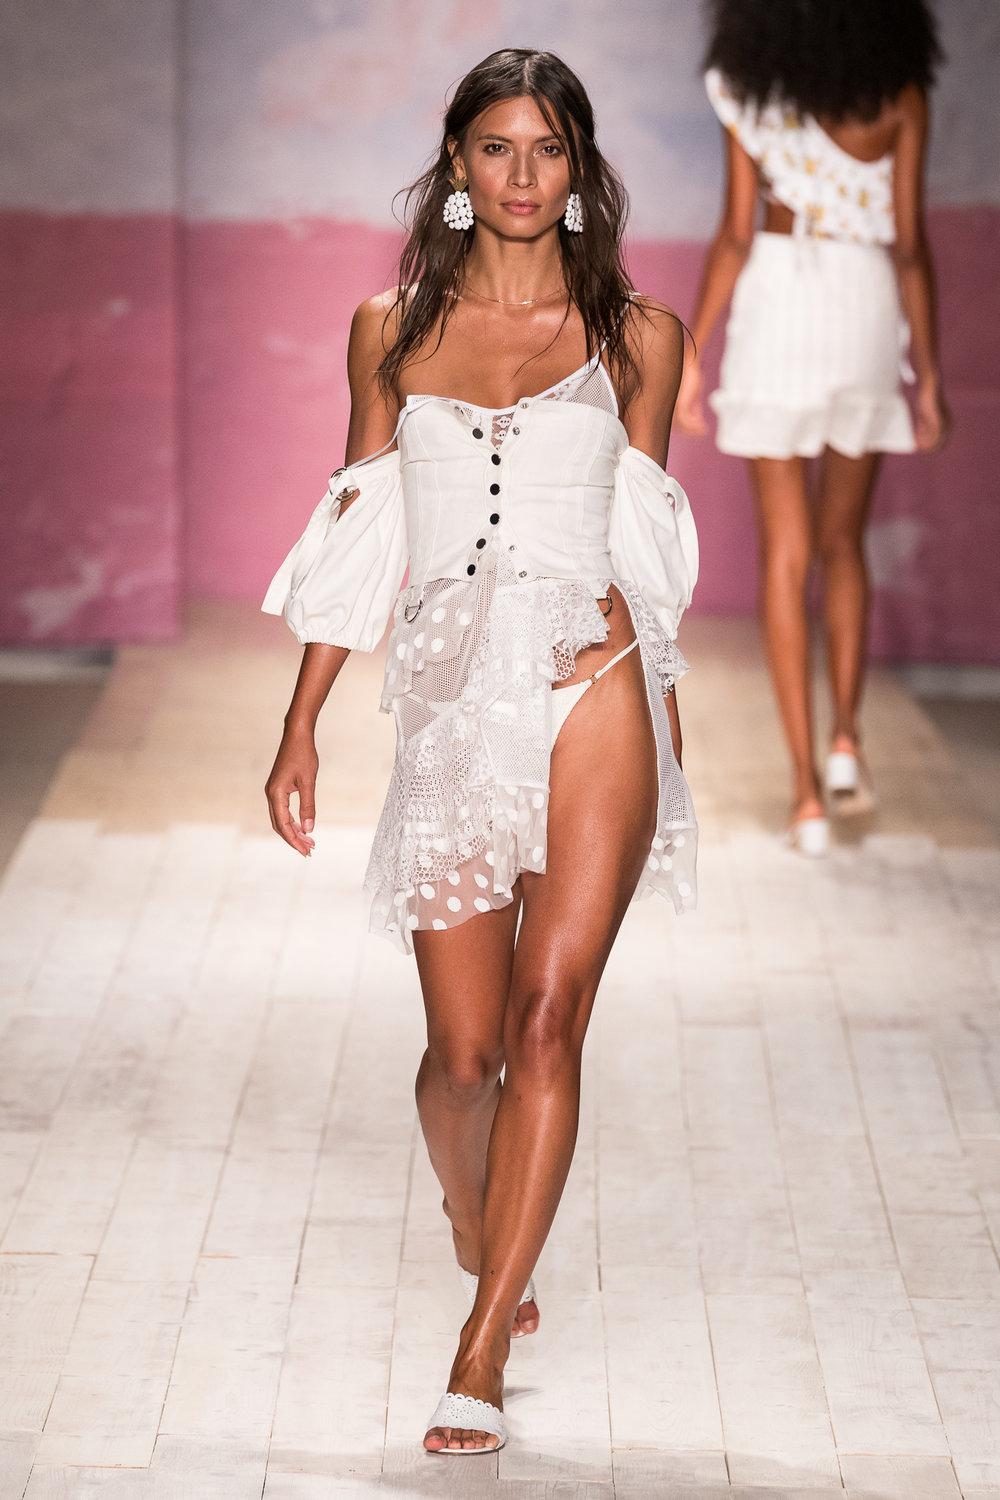 For Love & Lemons | Miami Swim Week 2017